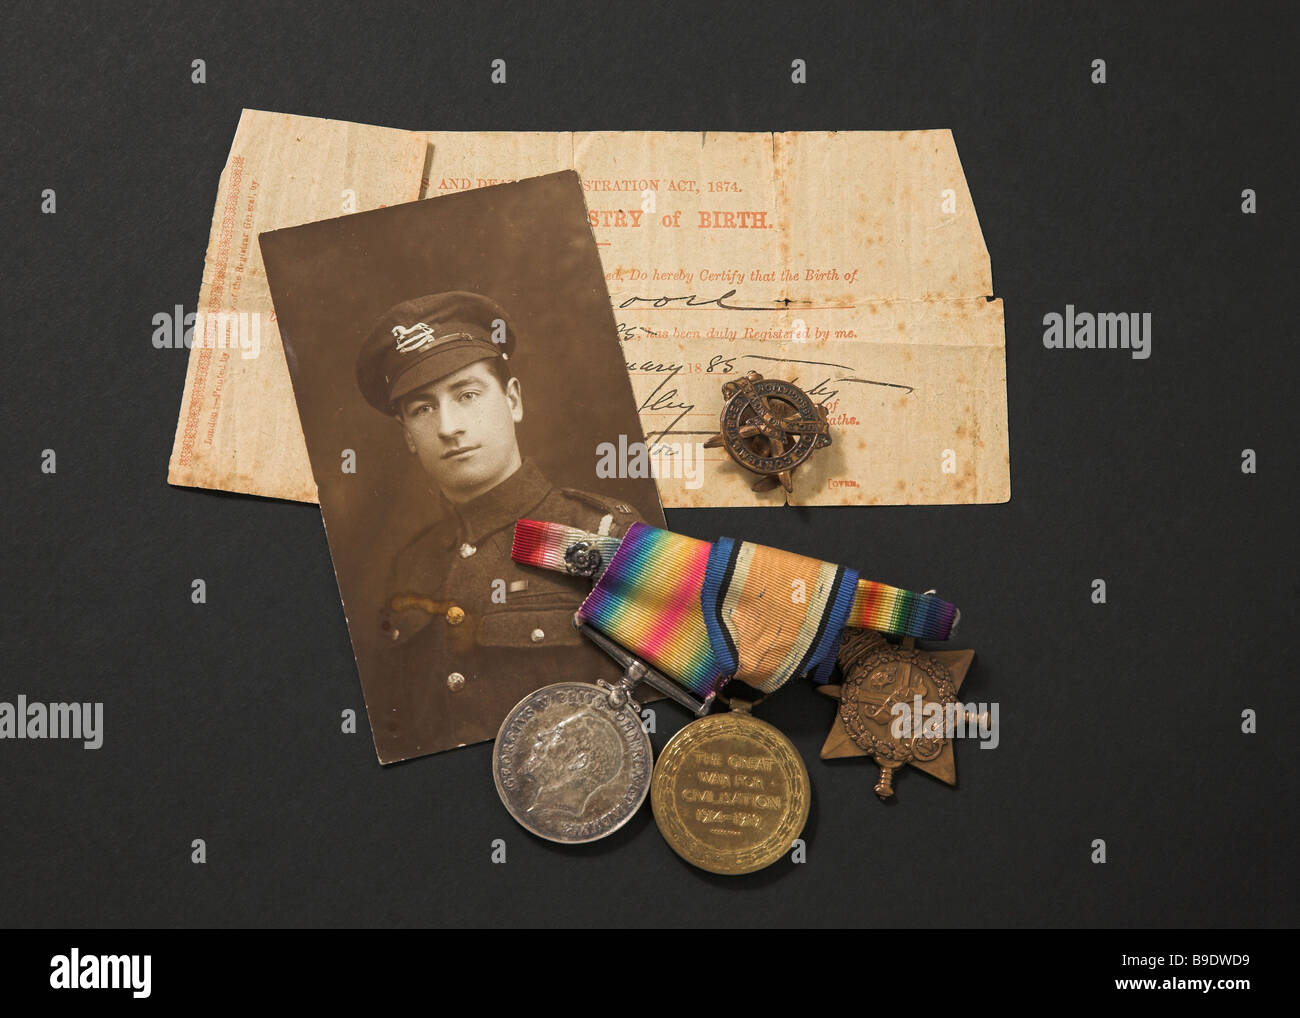 Great War memorabilia photograph medals and birth certificate - Stock Image